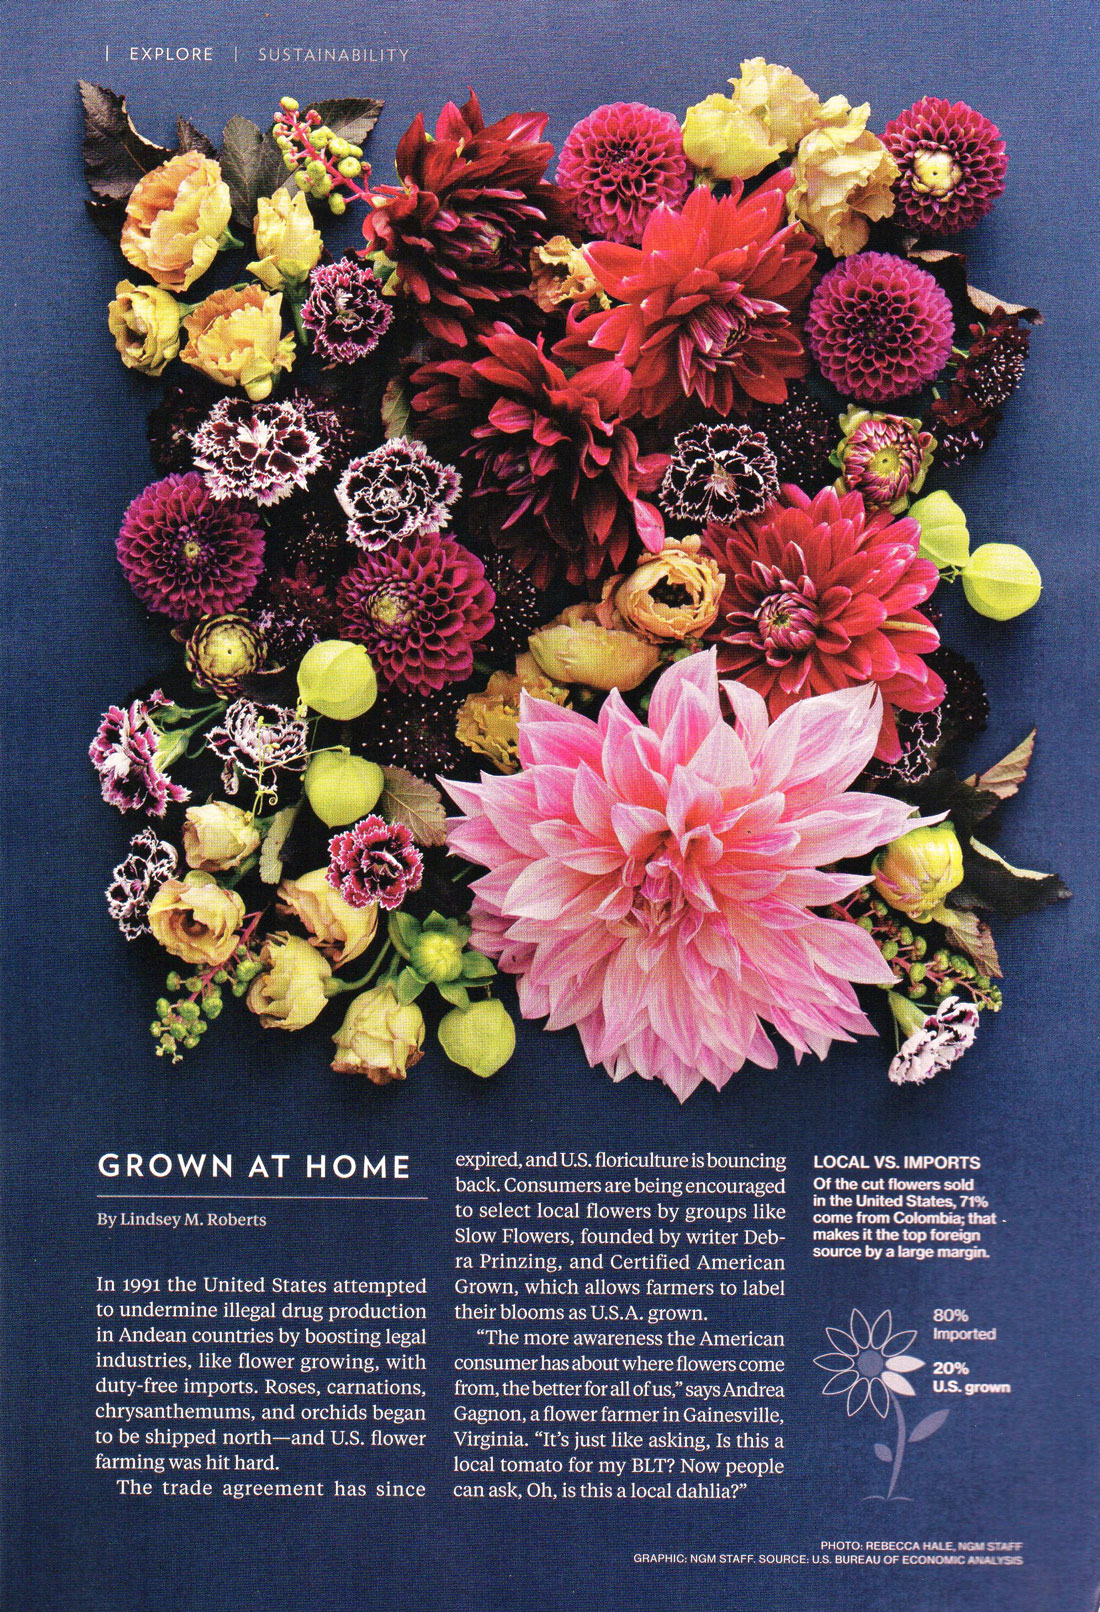 National Geographic - Grown at Home - November 2017, flowers by LynnVale Studios